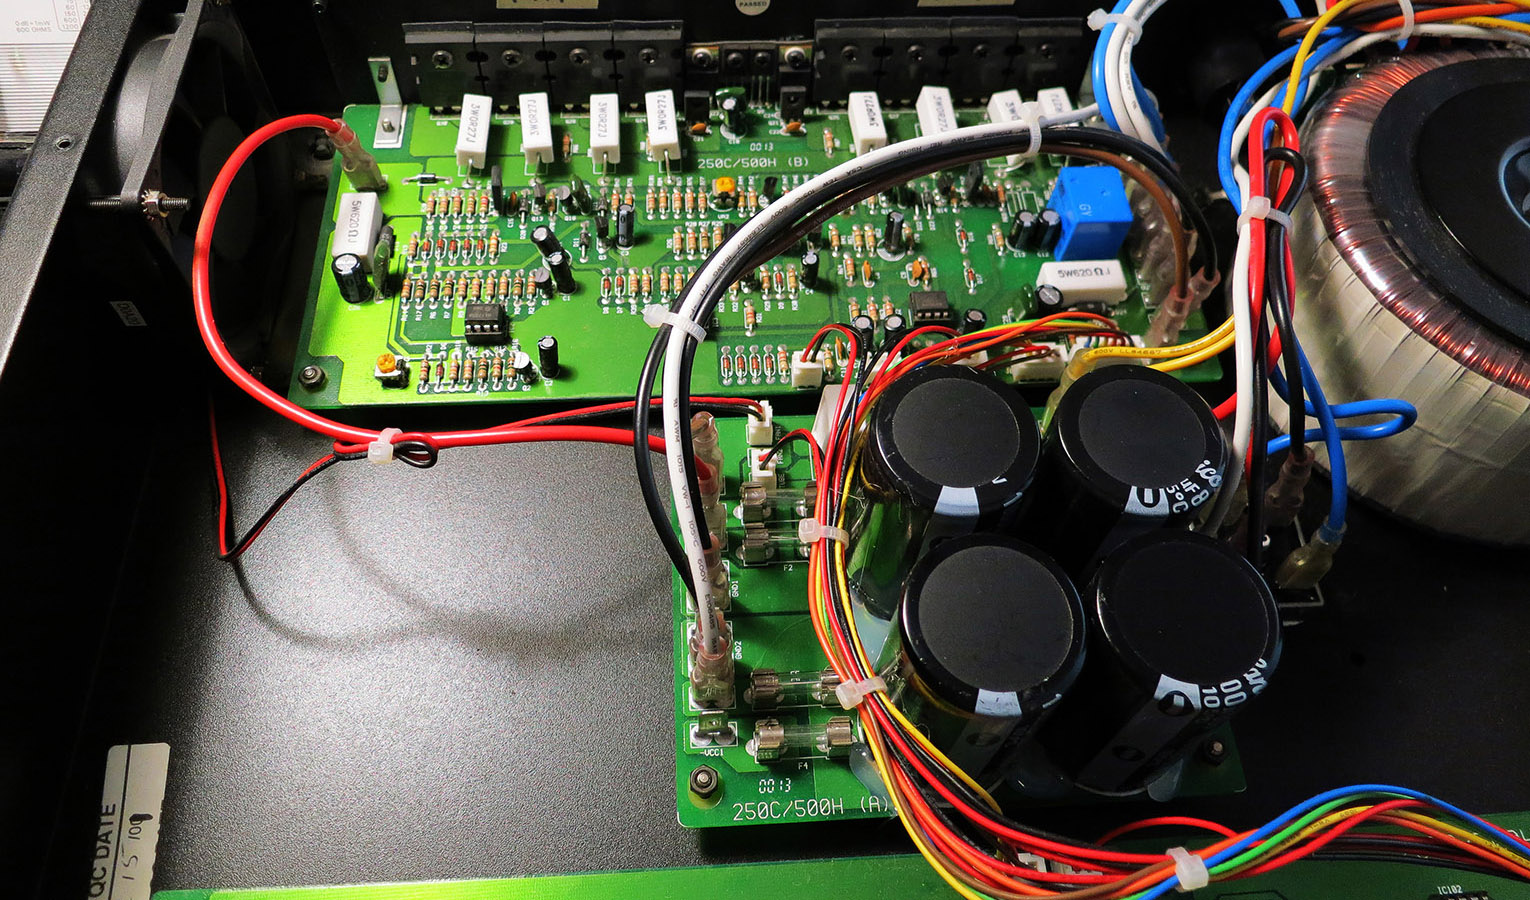 Amplifier circuitry